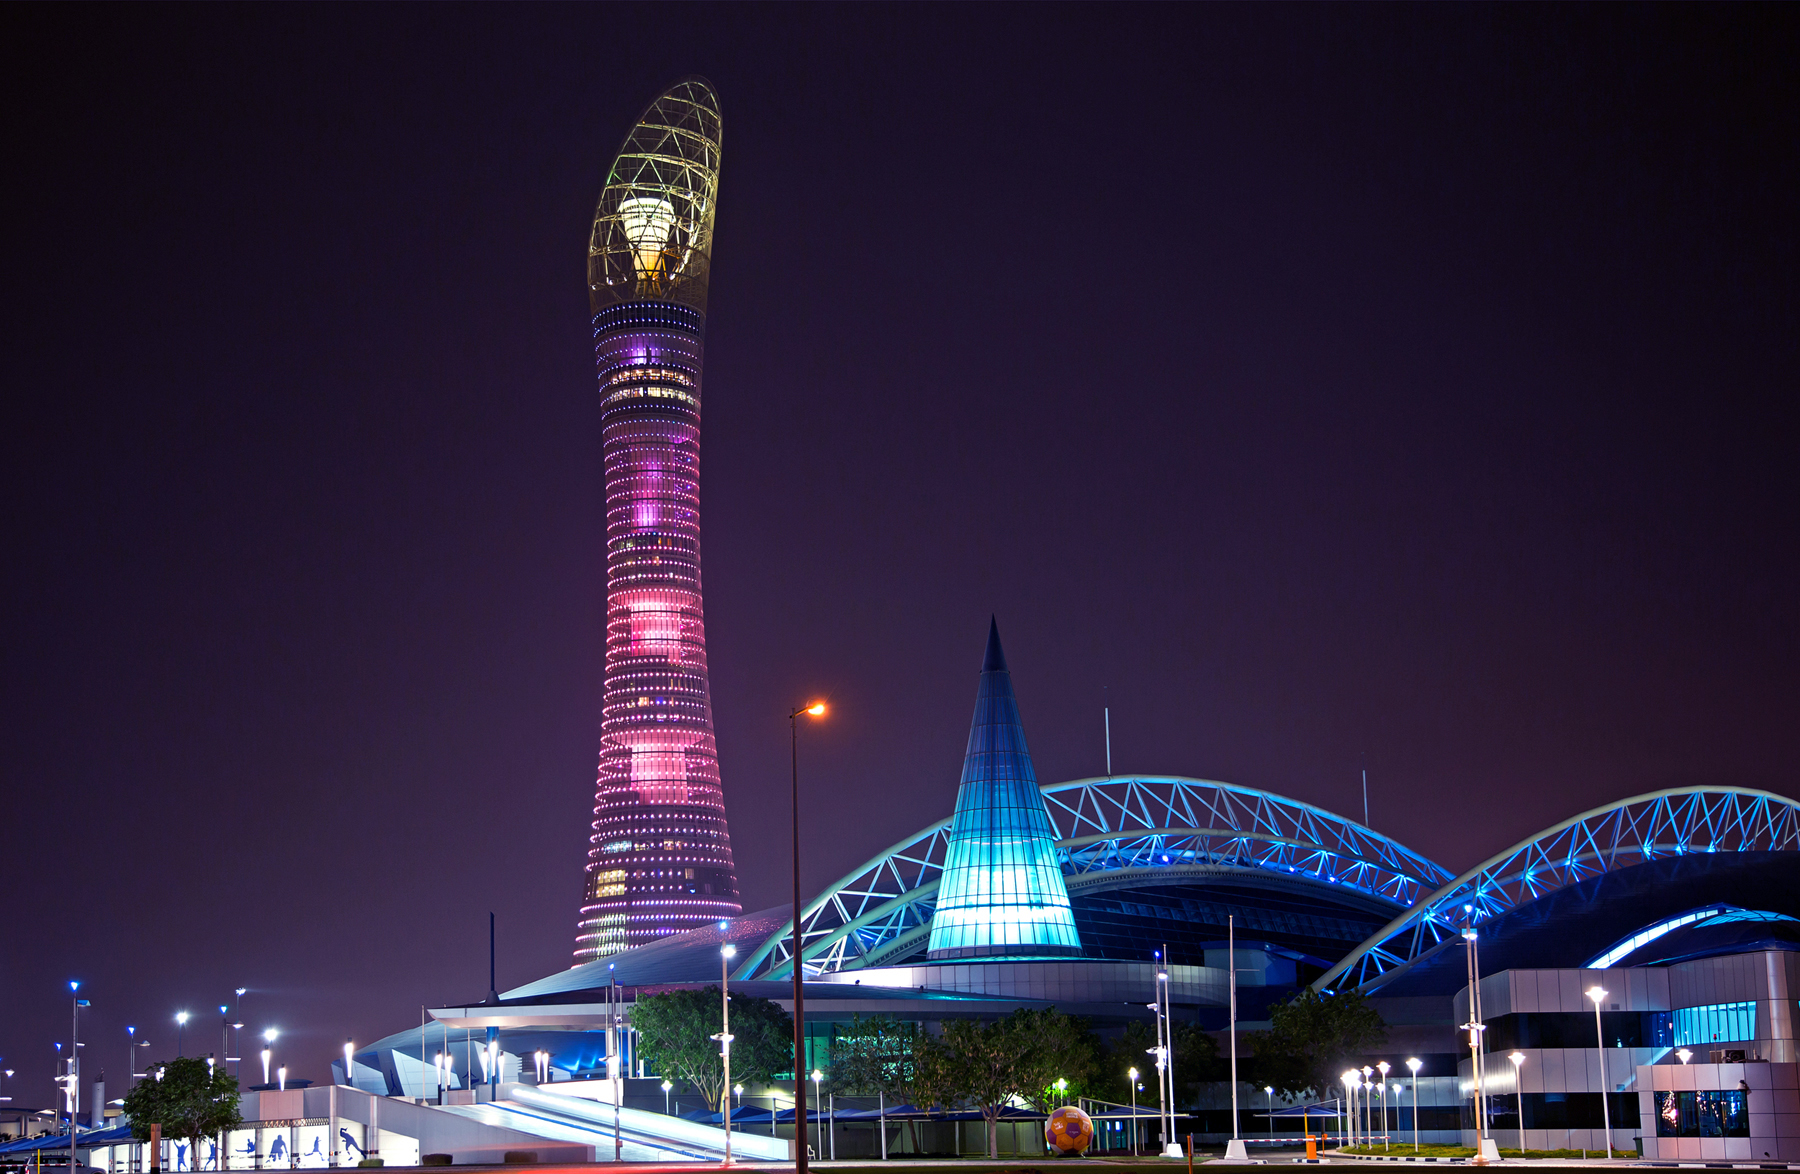 The magnificent Torch Doha at night